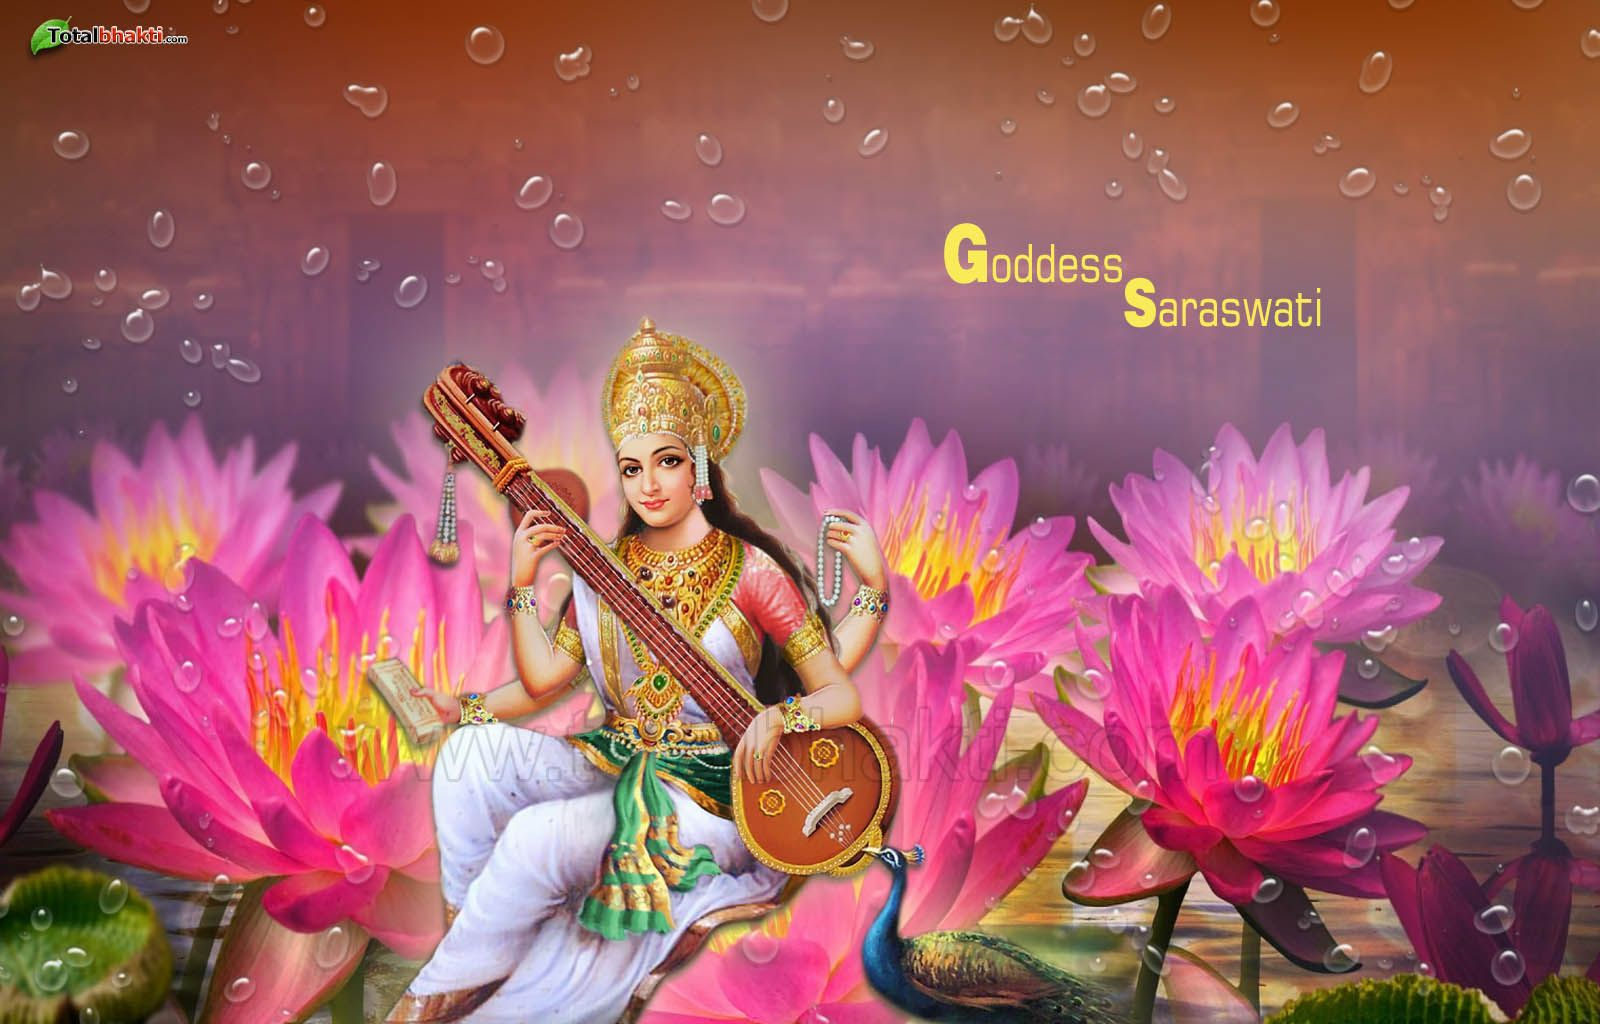 Beautiful Wallpaper Lord Saraswati - 0942c40099de41da534aa123560bd076  Photograph_30516.jpg